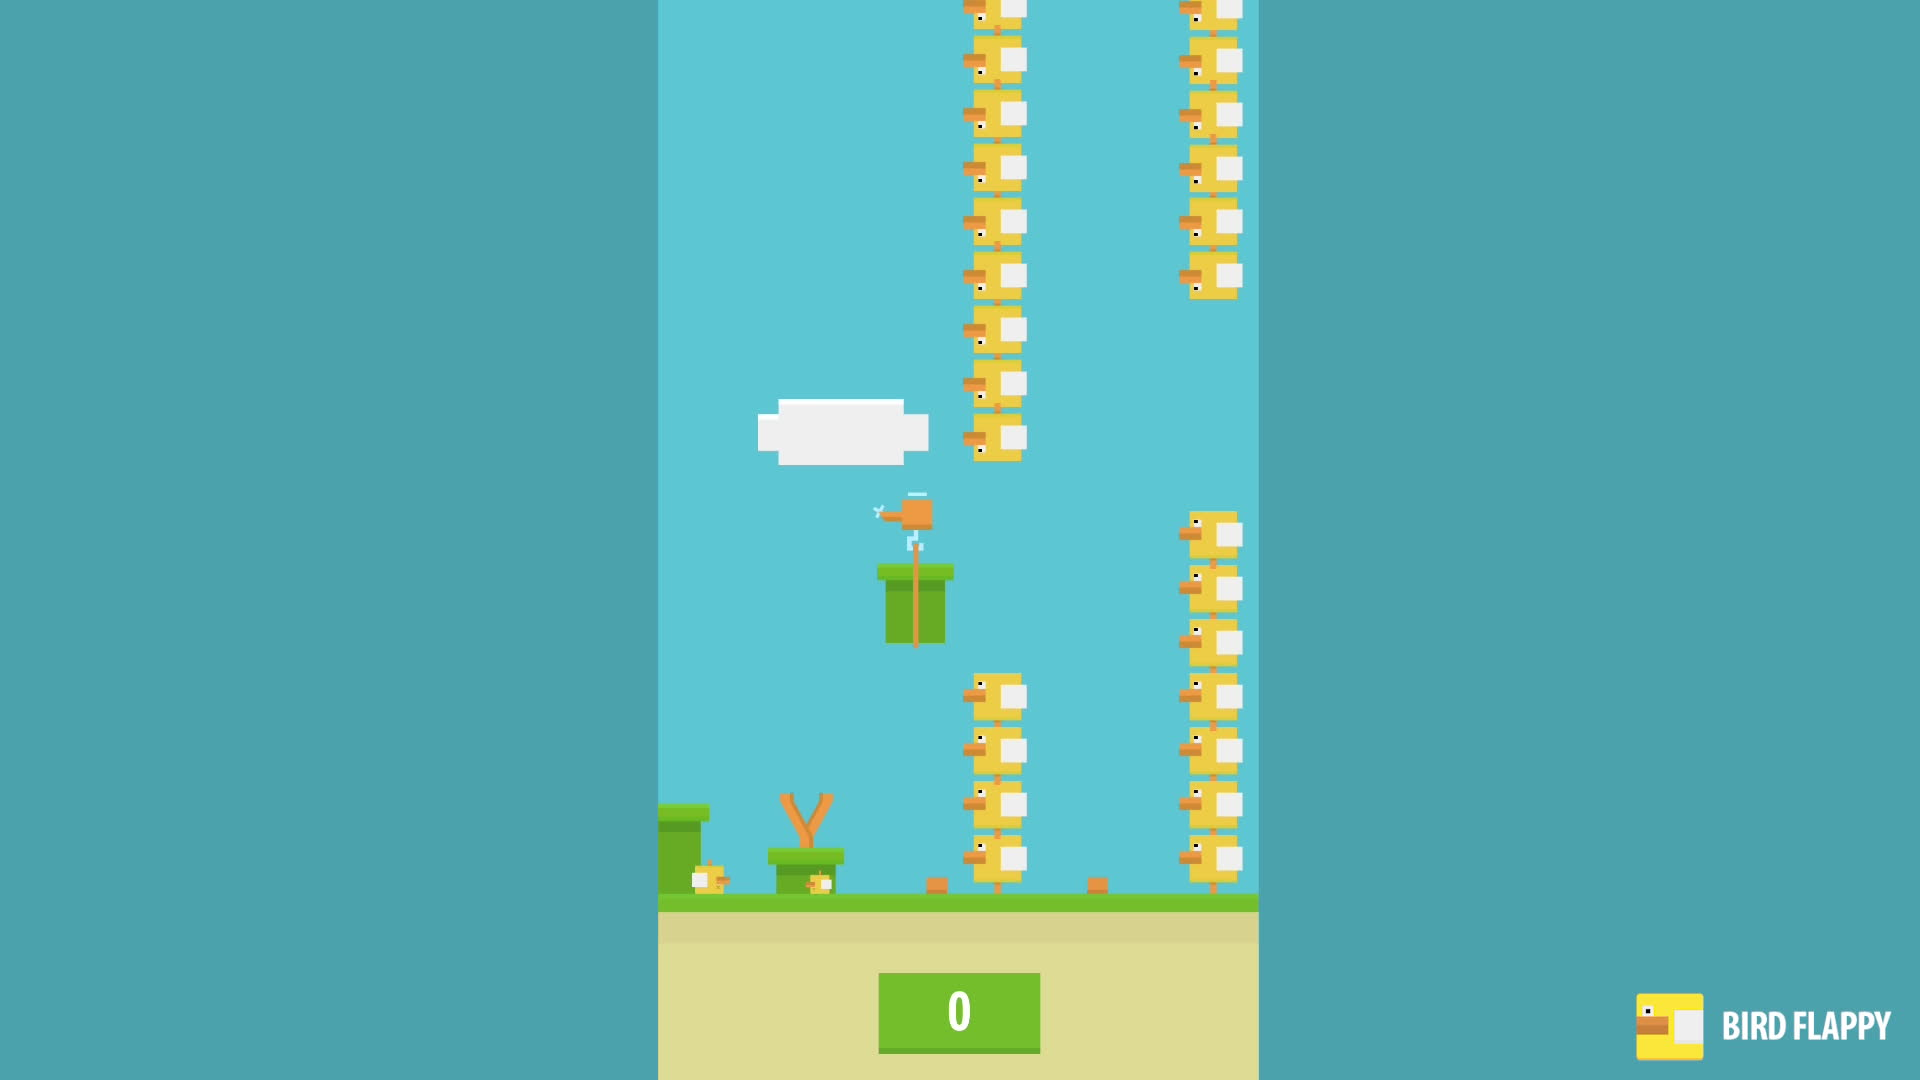 awesome, fun, gaming, Reversed Flappy Bird GIFs